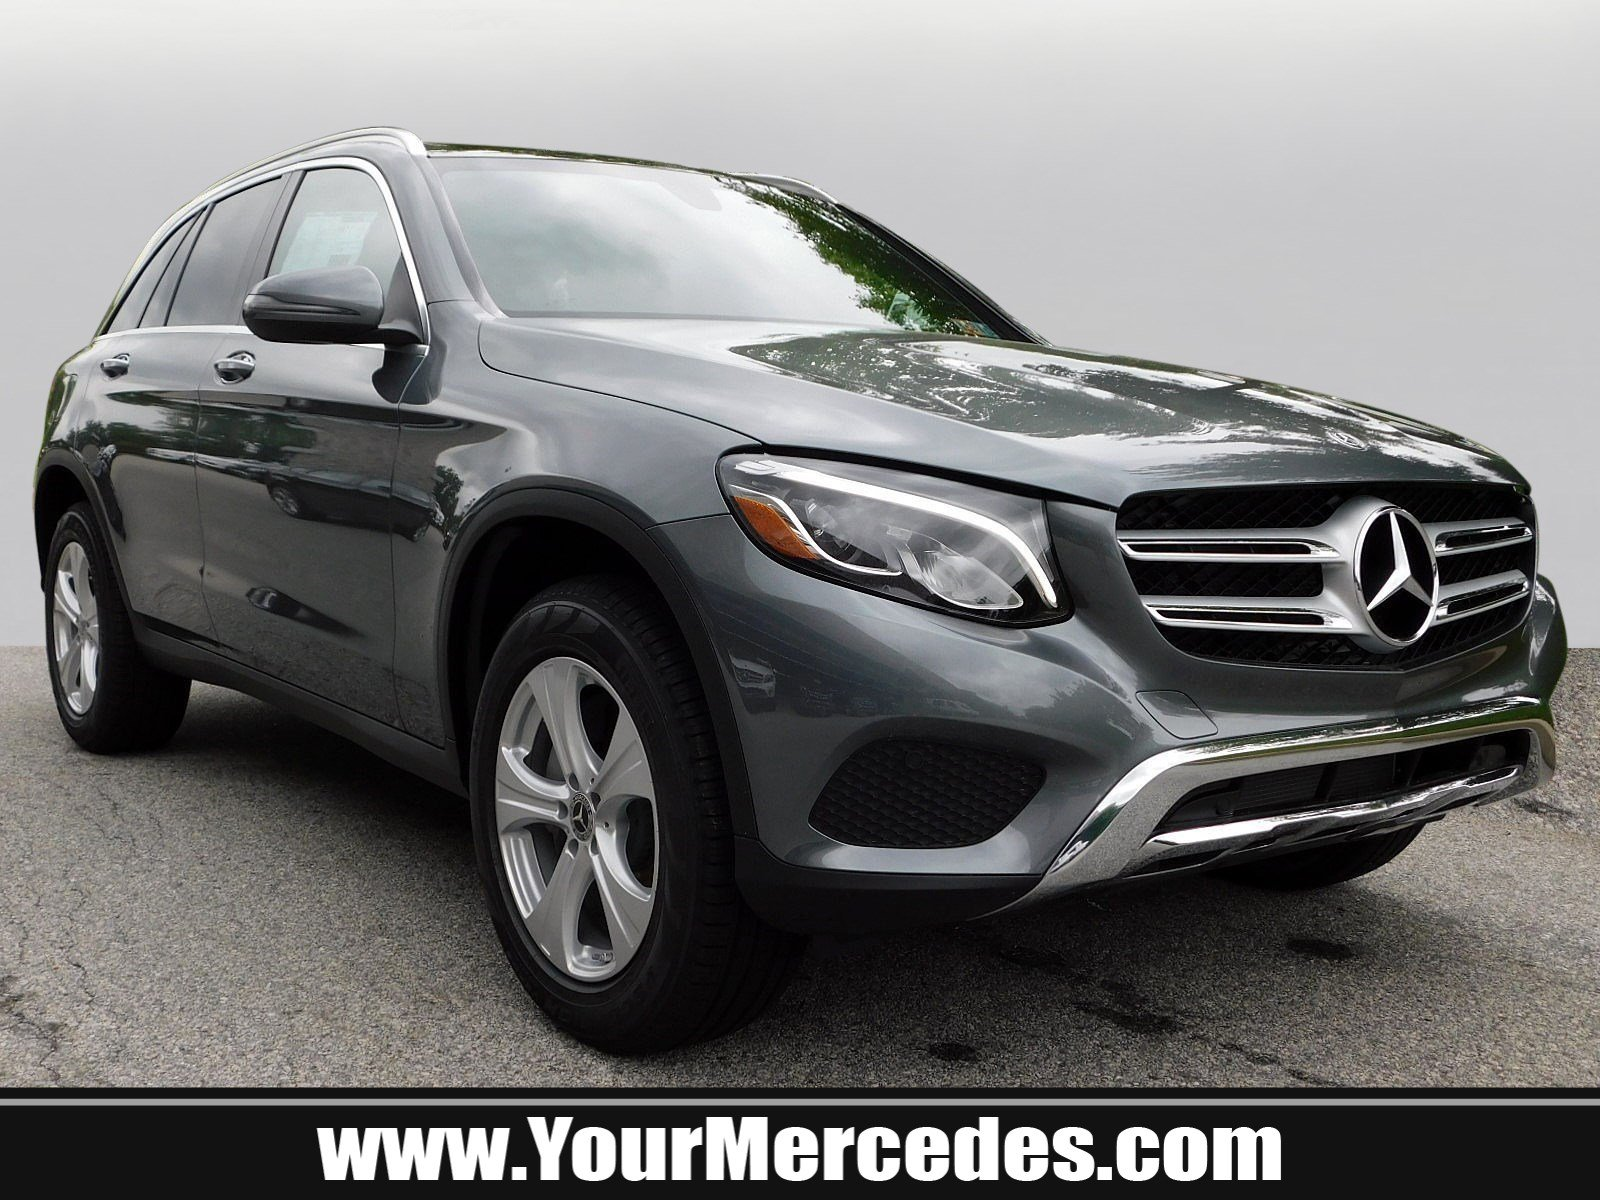 New 2018 Mercedes Benz GLC GLC 300 SUV in West Chester JV